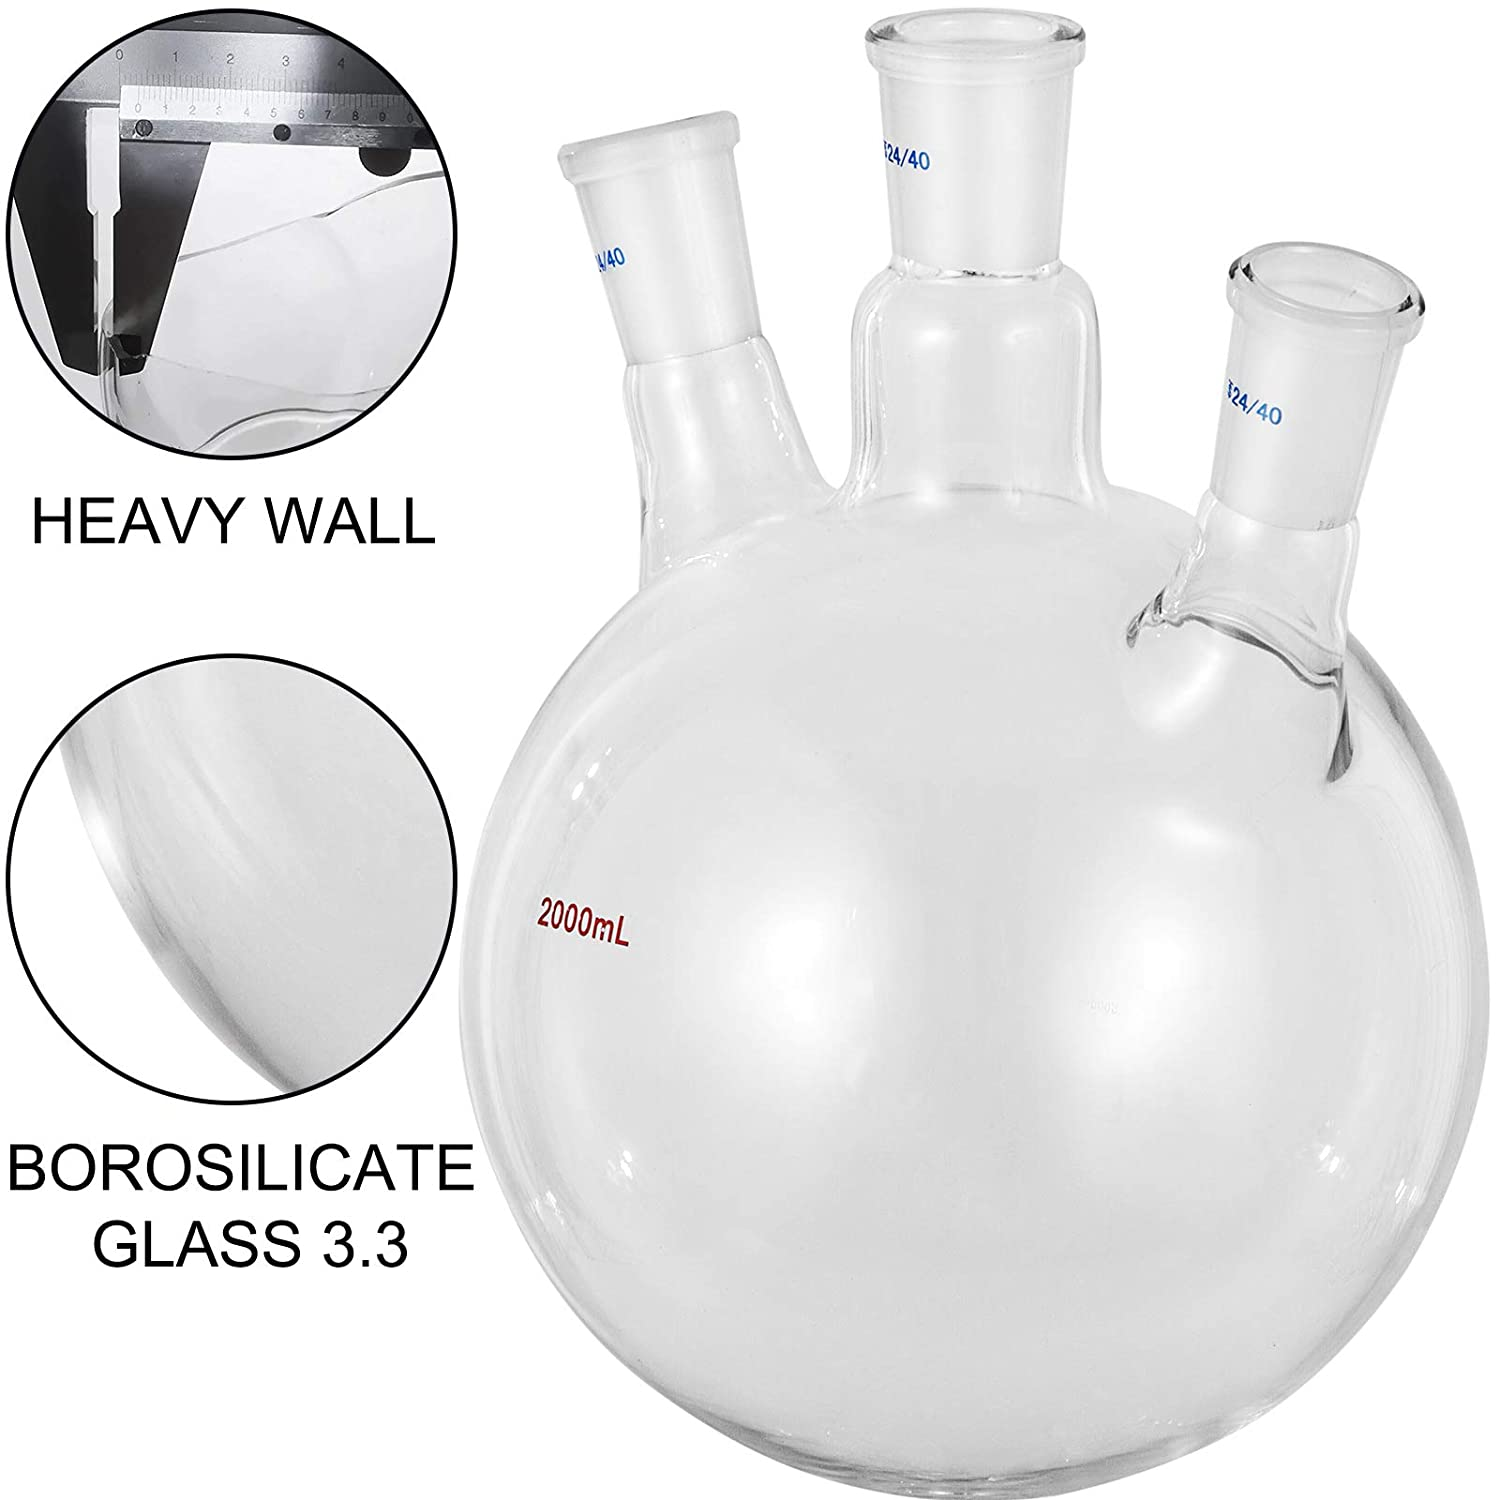 Flask Round Bottom for Vacuum Distillation Apparatus VEVOR Round Bottom Flask 2000 ml Receiving Flask Borosilicate Glass Reaction Flask 3 Neck Boiling Flask with 24//40 Standard Taper Ground Joint